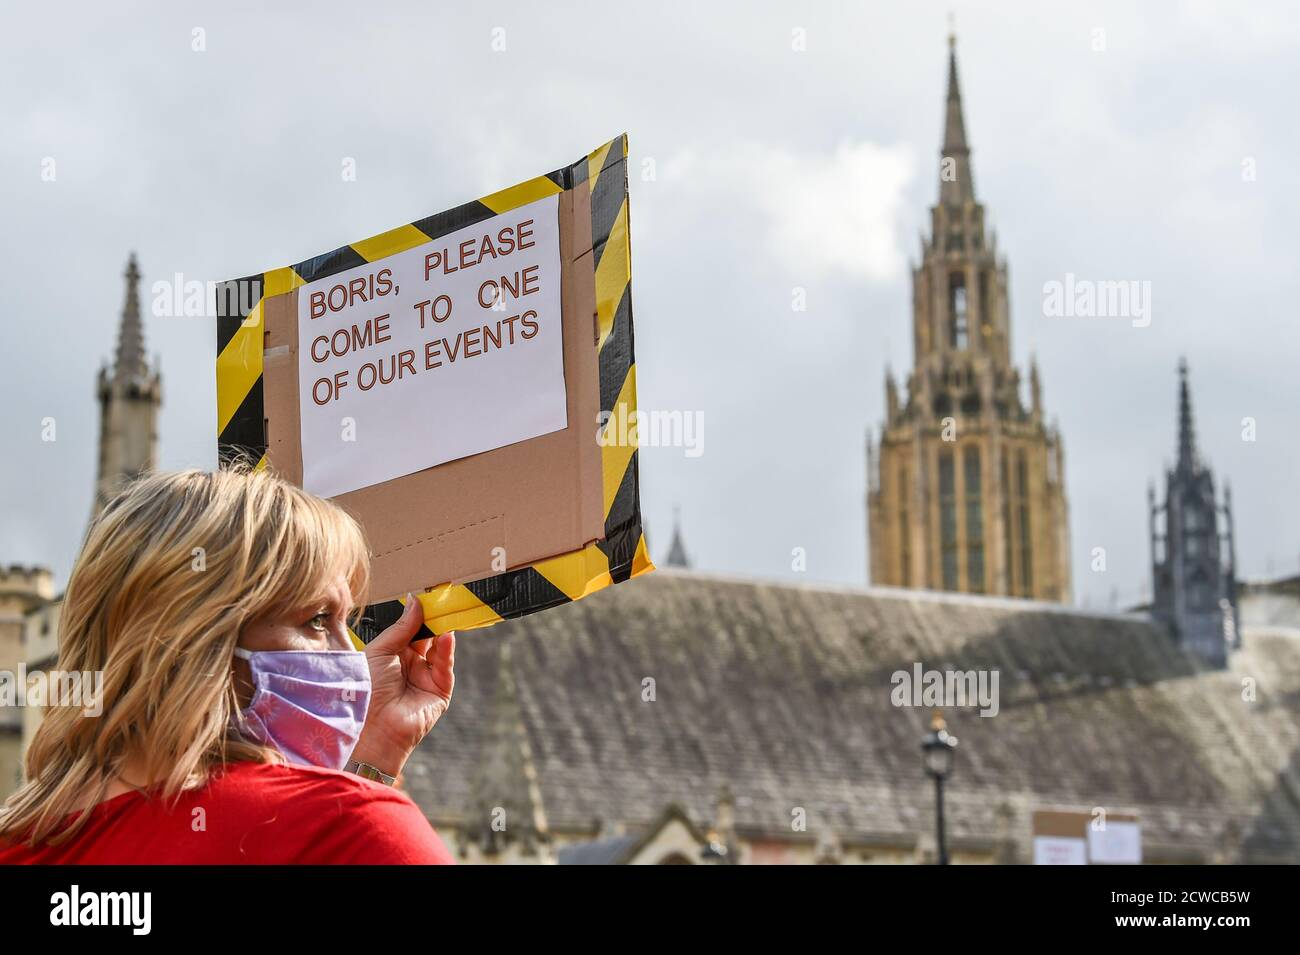 """London, UK. 29th Sept 2020. Events Industry workers gather for the silent protest #WeMakeEvents - """"Stand As One"""" at Parliament Square In London, United Kingdom on 29th September 2020. Photo by Tabatha Fireman/Female Perspective/Alamy Live News Stock Photo"""